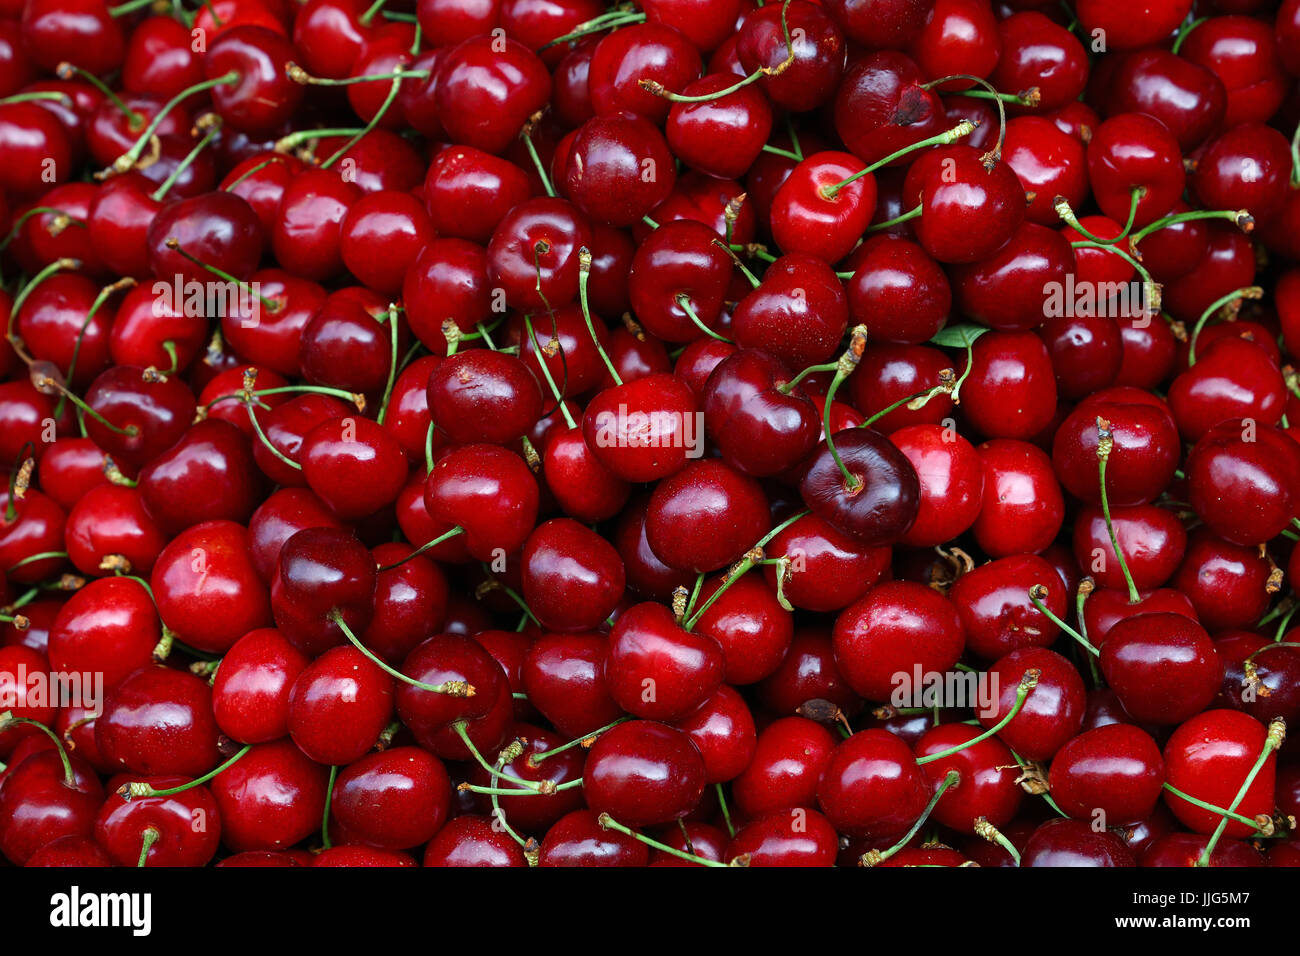 Heap of fresh red ripe sweet black cherry berries on retail market stall display, close up, high angle view - Stock Image